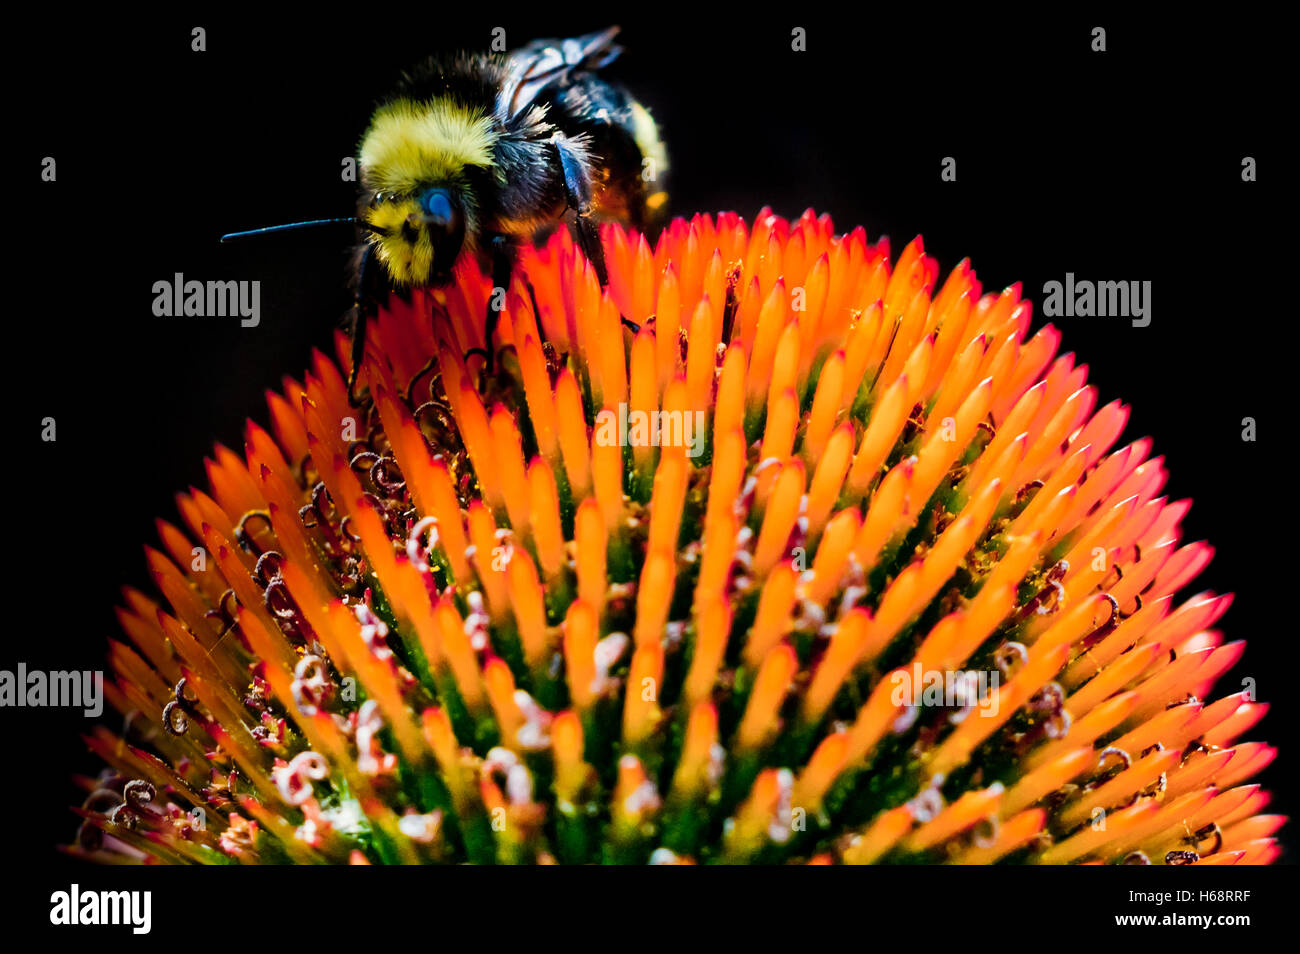 A bee atop a spiked orange flower - Stock Image